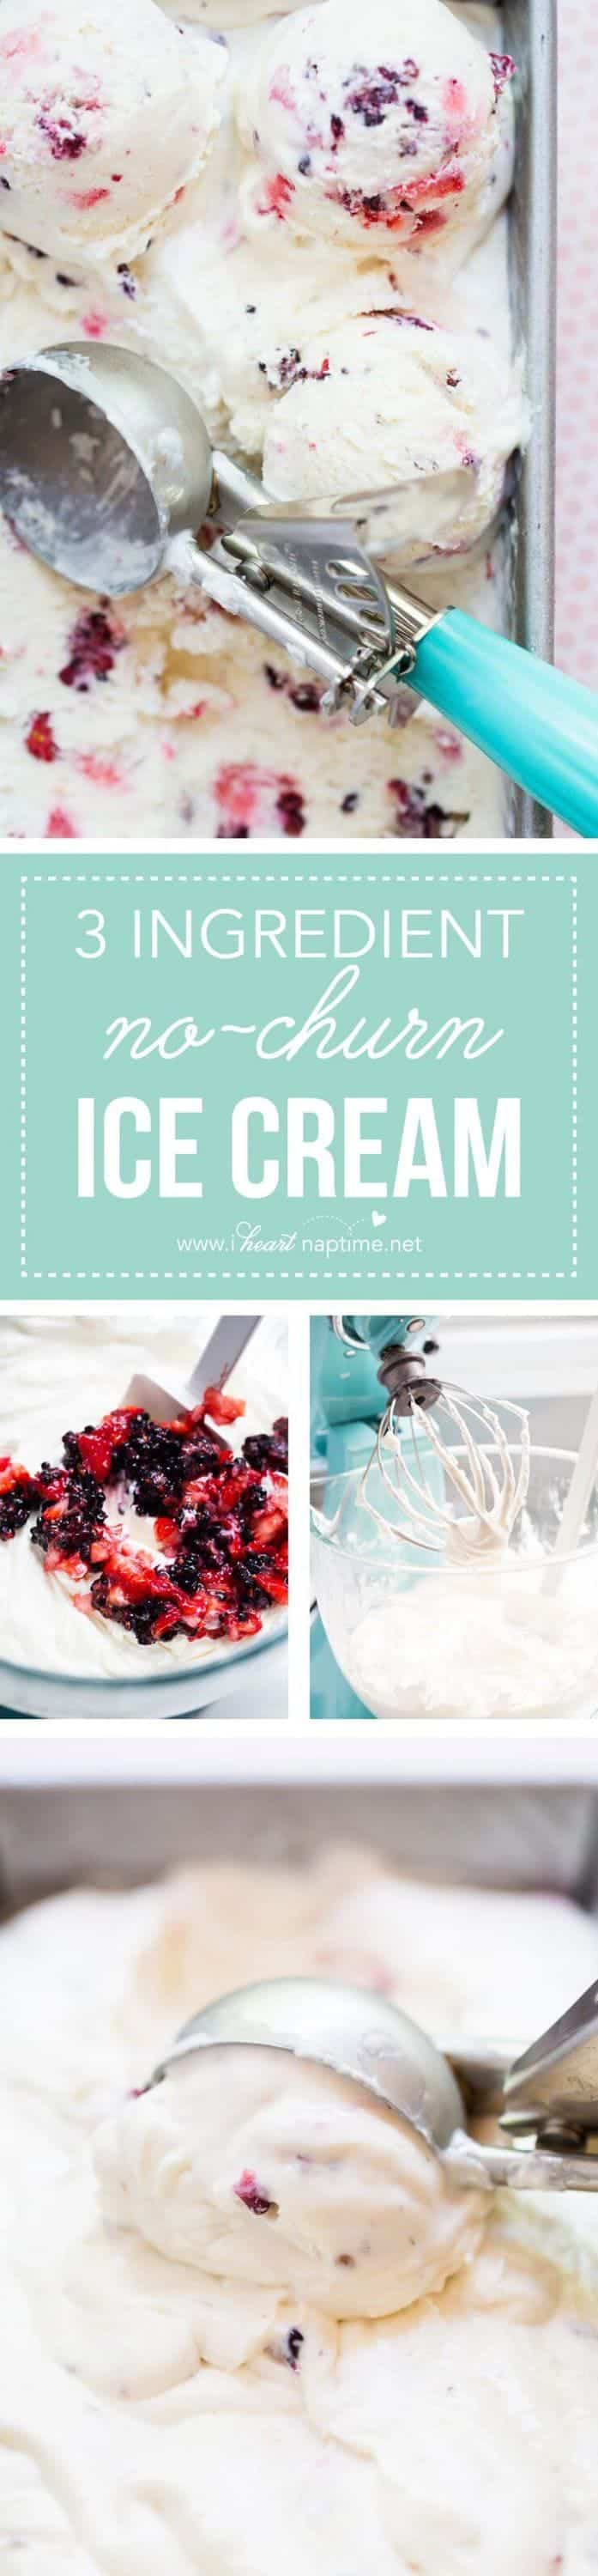 no churn ice cream